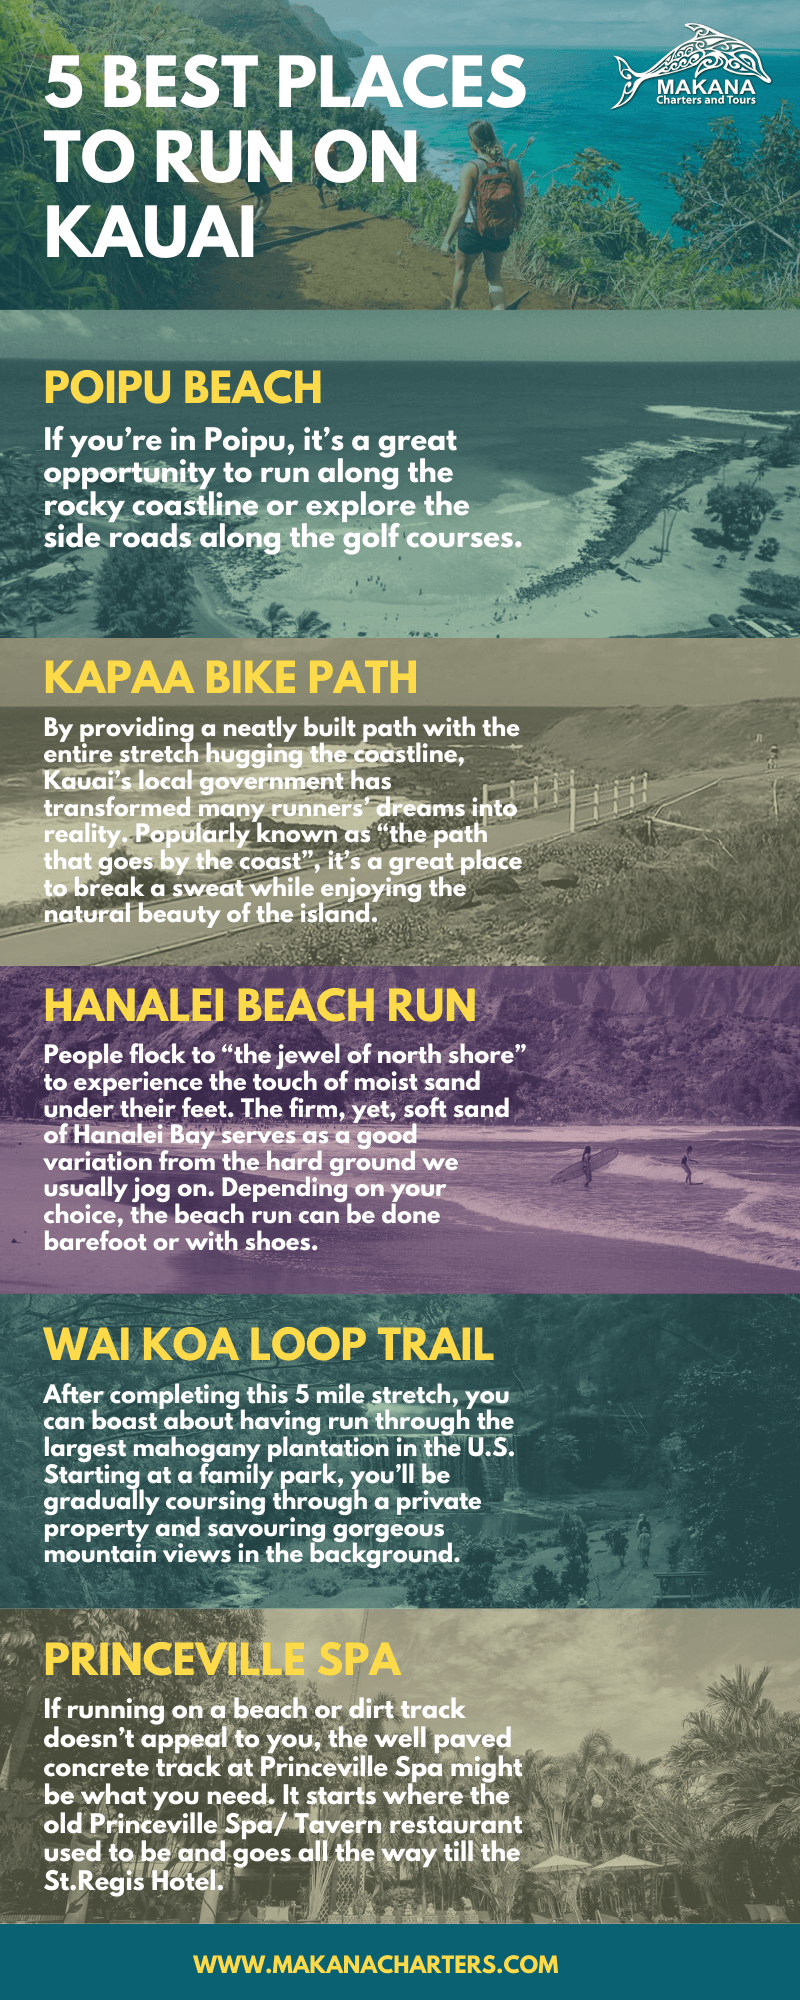 5 Best Places to Run in Kauai [Infographic]